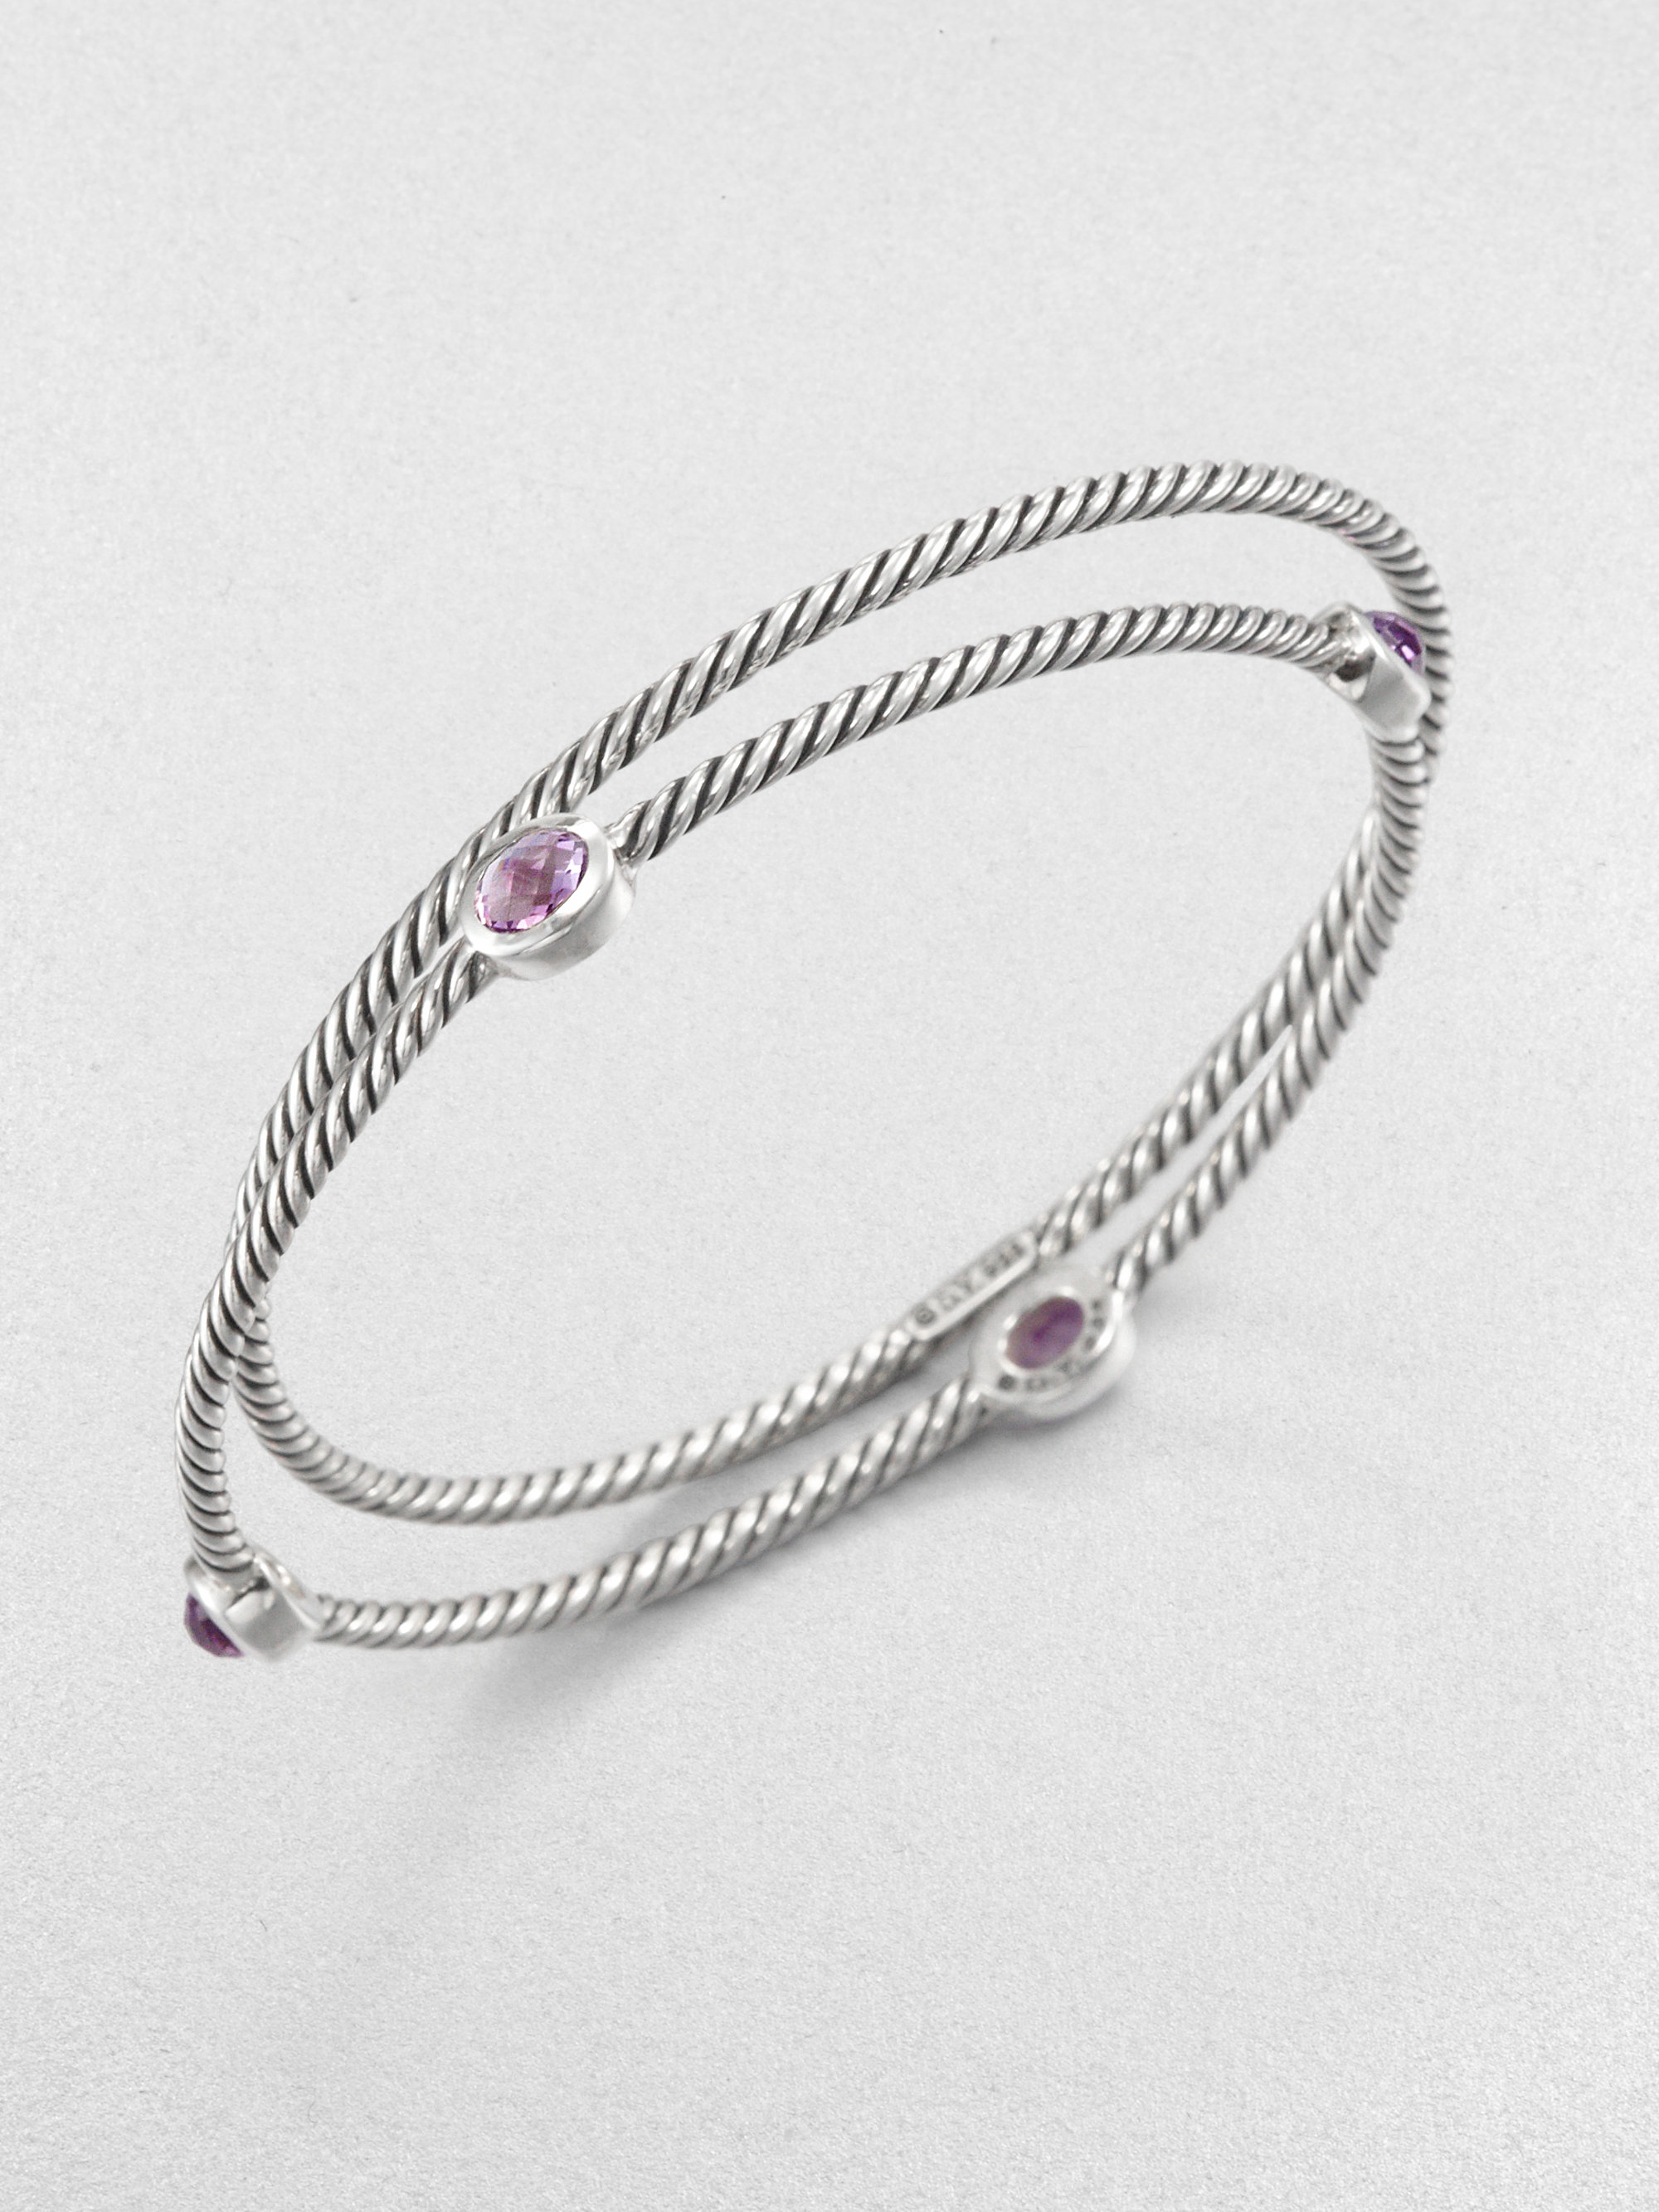 like bangle bangles amethyst things bracelet pin jewelry pinterest i and amethysts